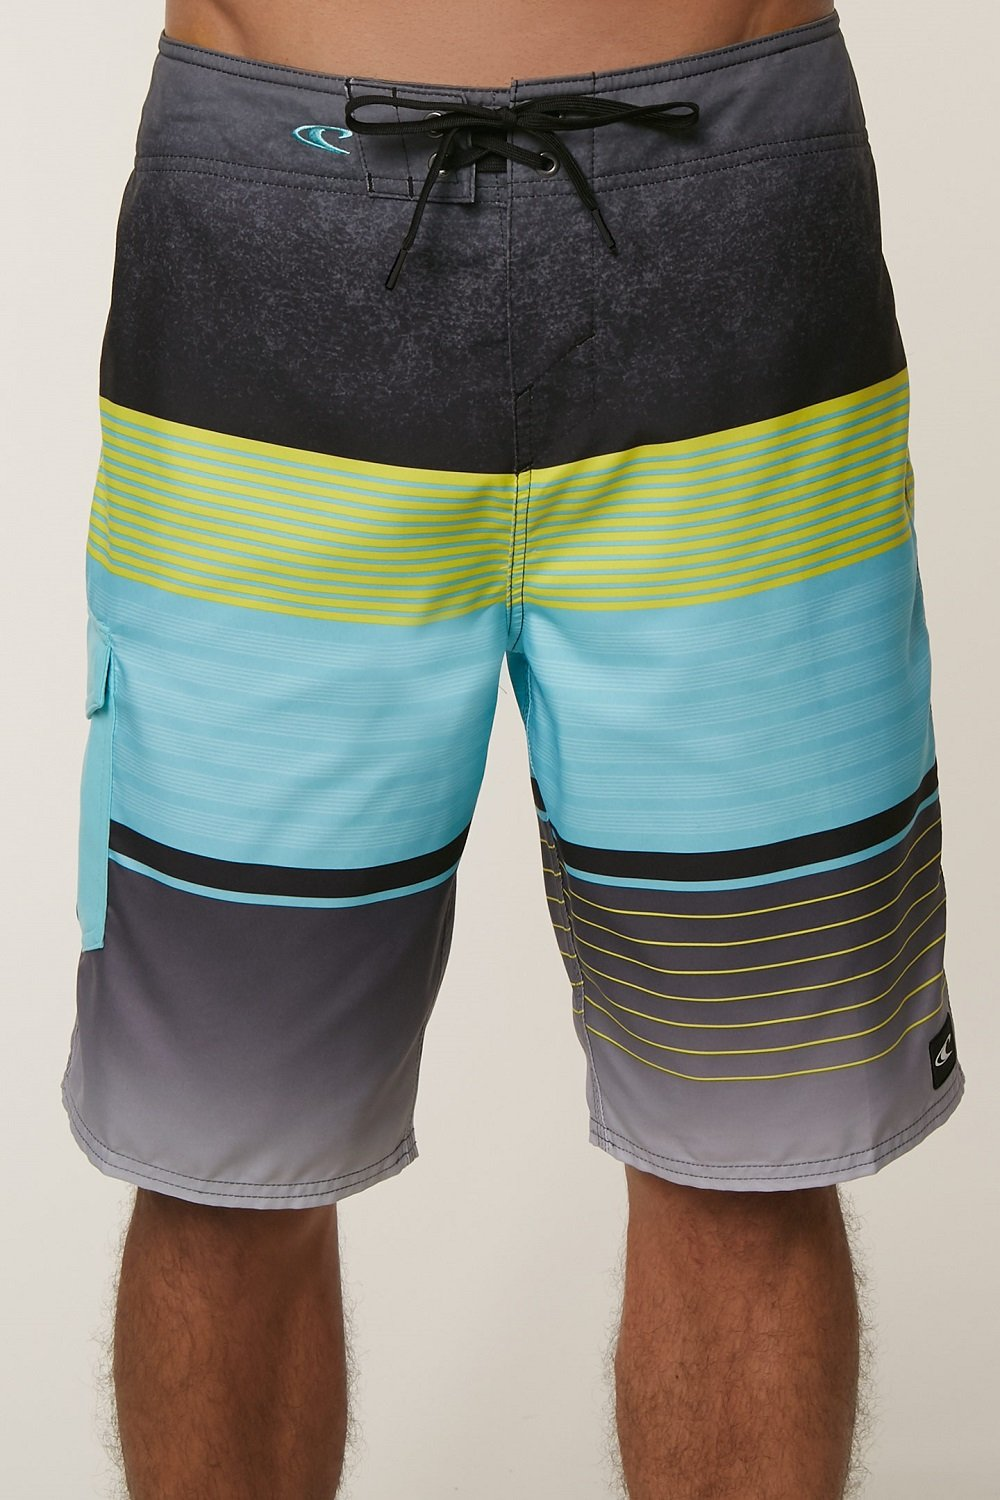 ONEILL MEN'S BOARDSHORT LENNOX2